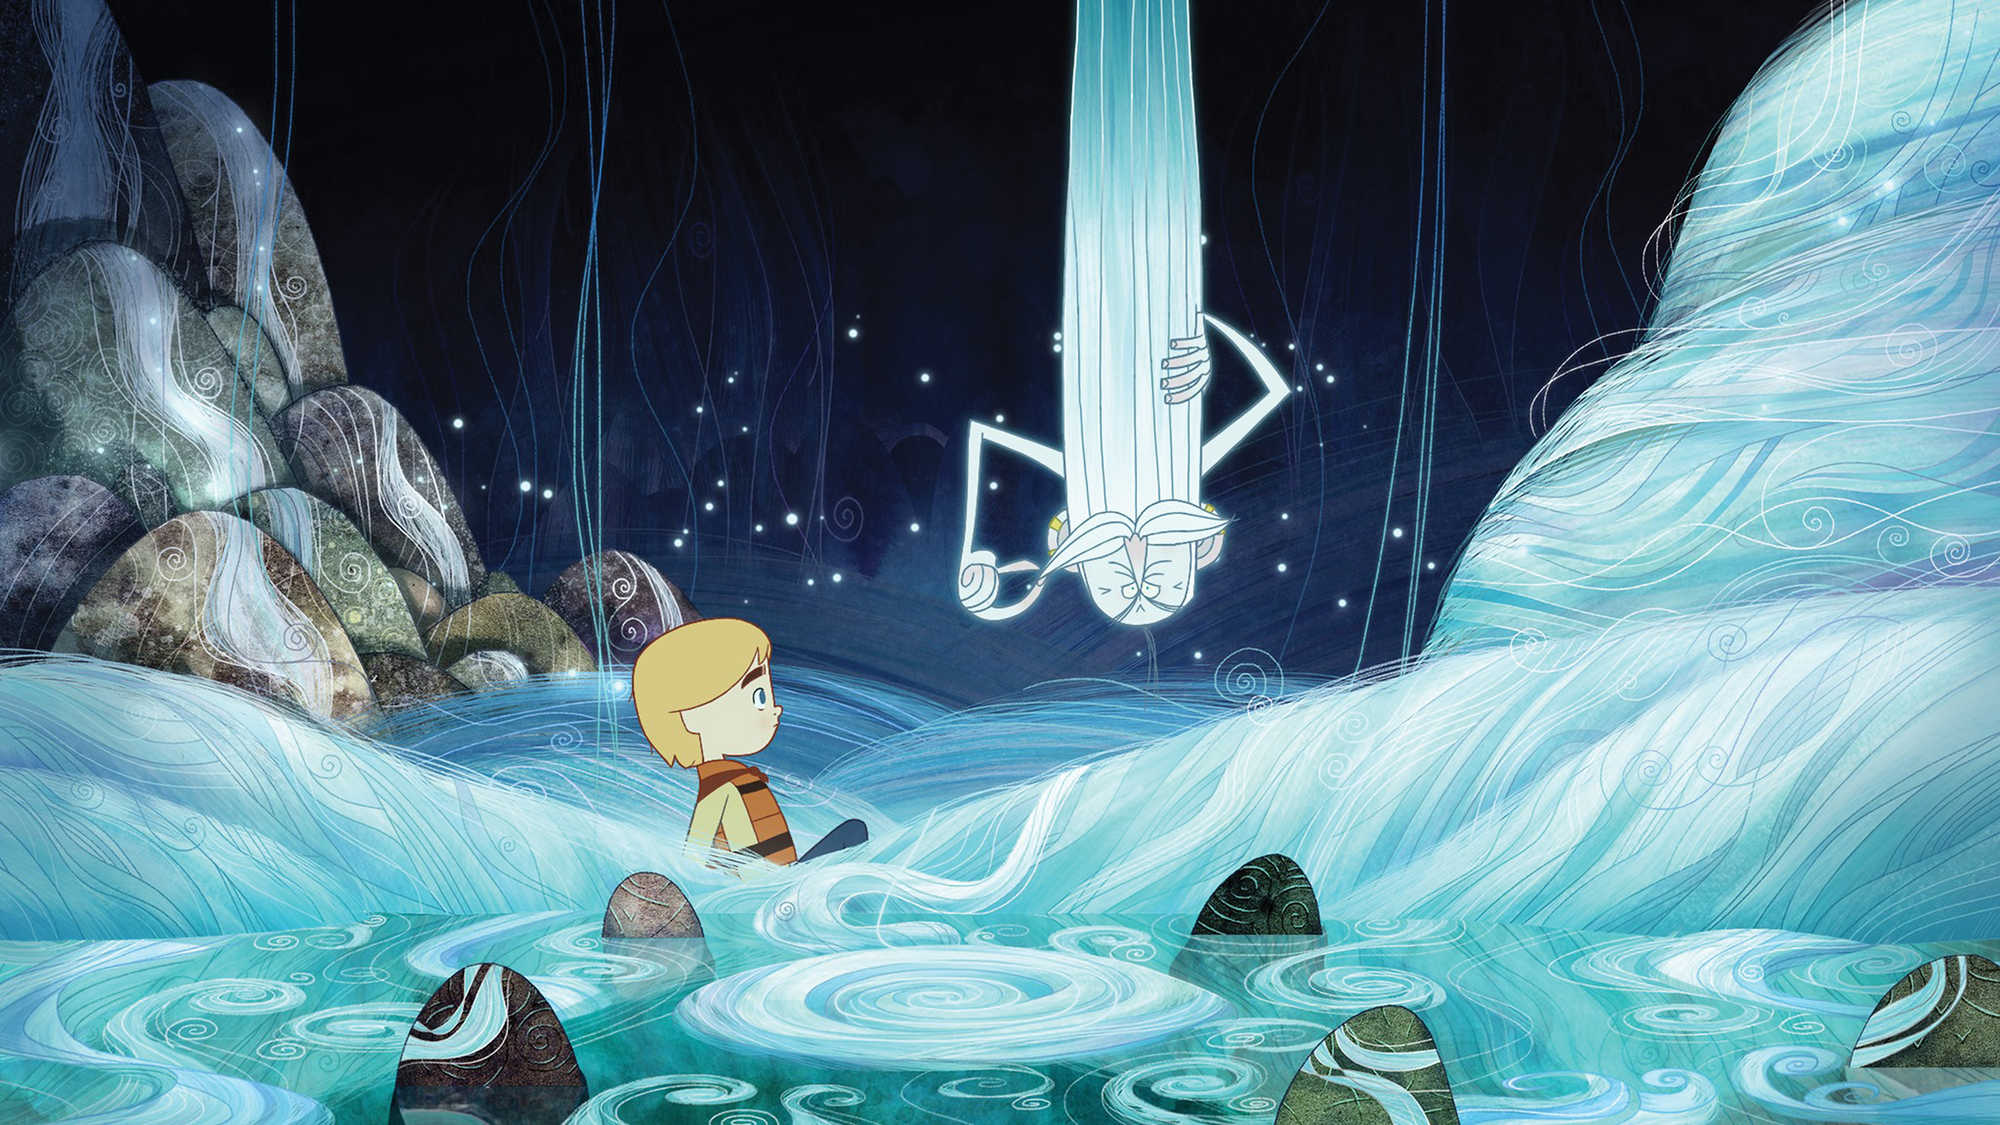 Song of the Sea (image 3)